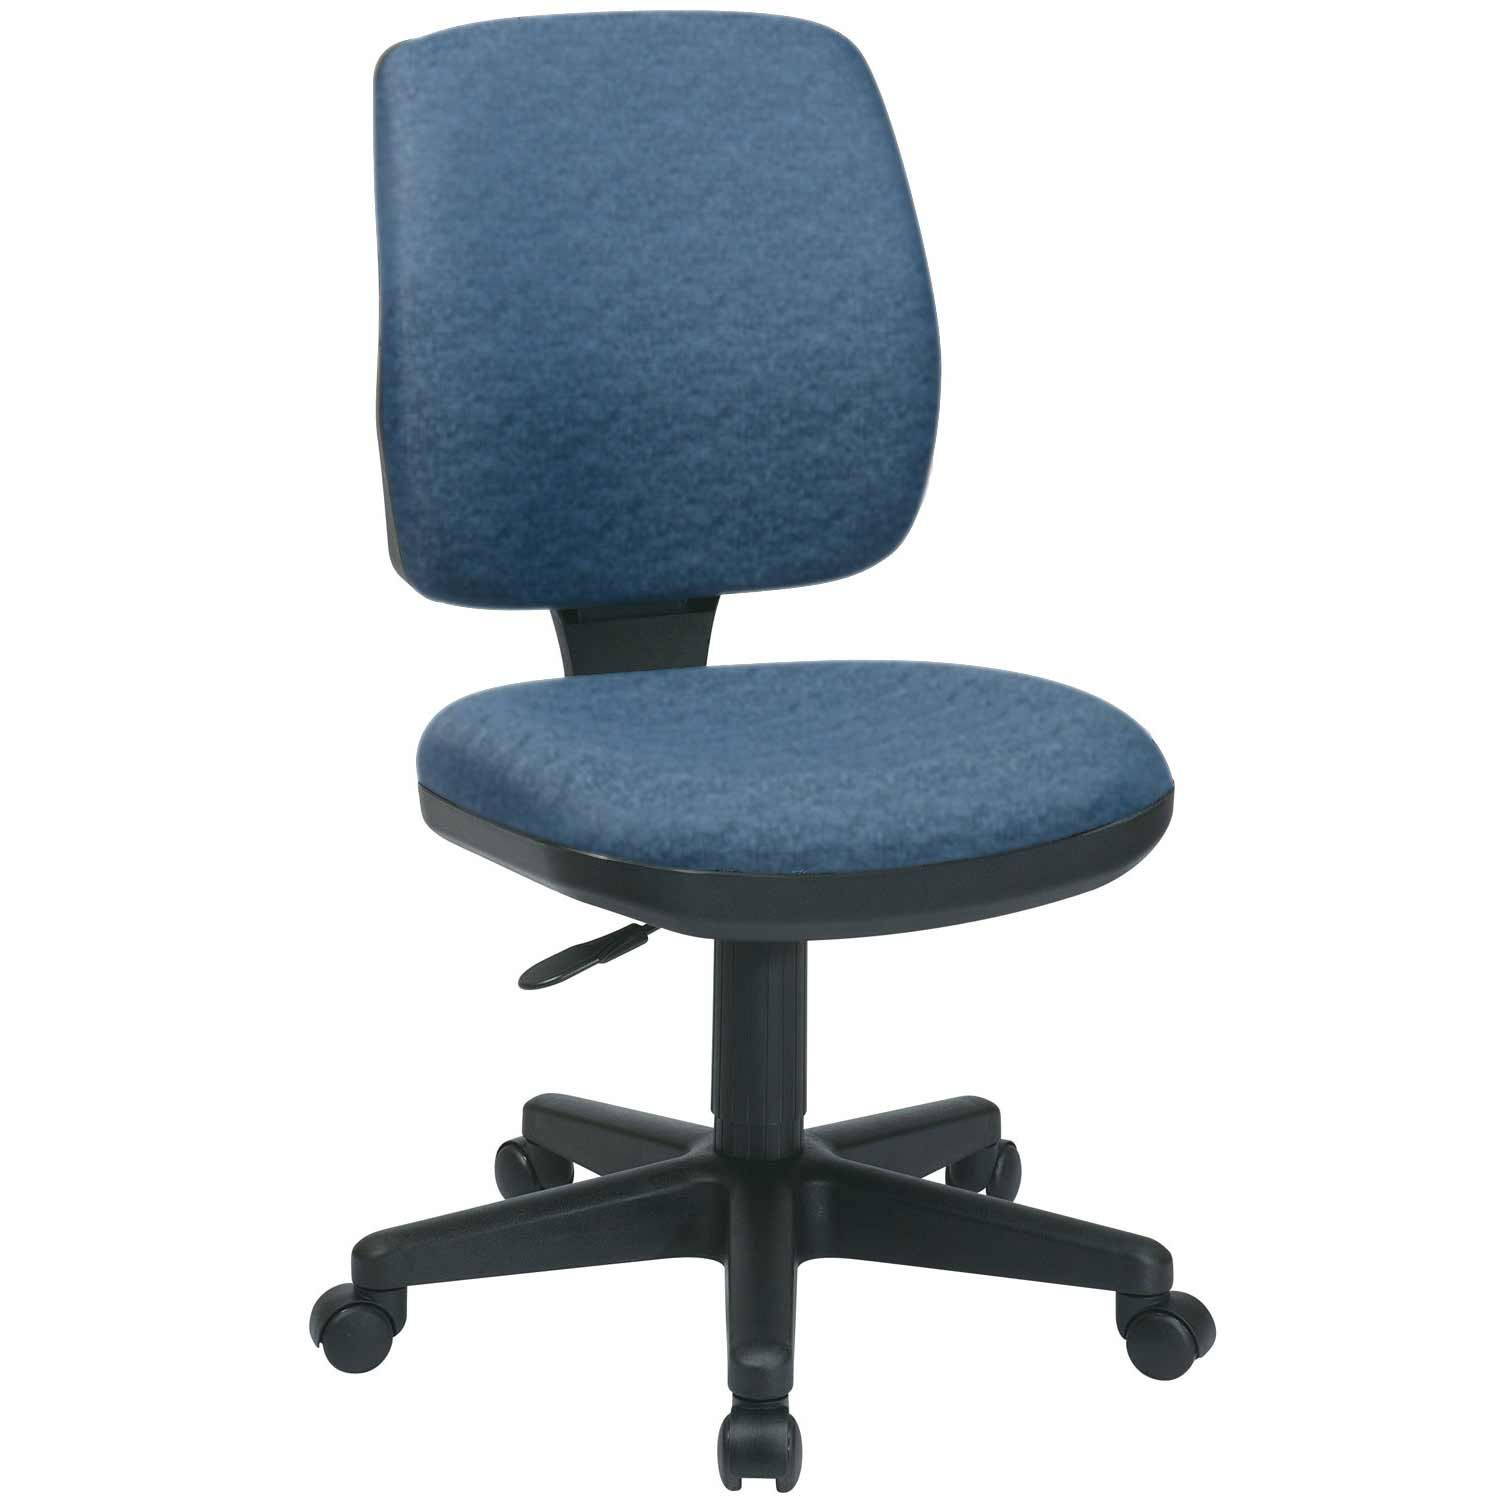 Luxury Blue Fabric Armless Task Chairs Upholstered Desk Chair Retro Office Chair Upholstered Swivel Chairs